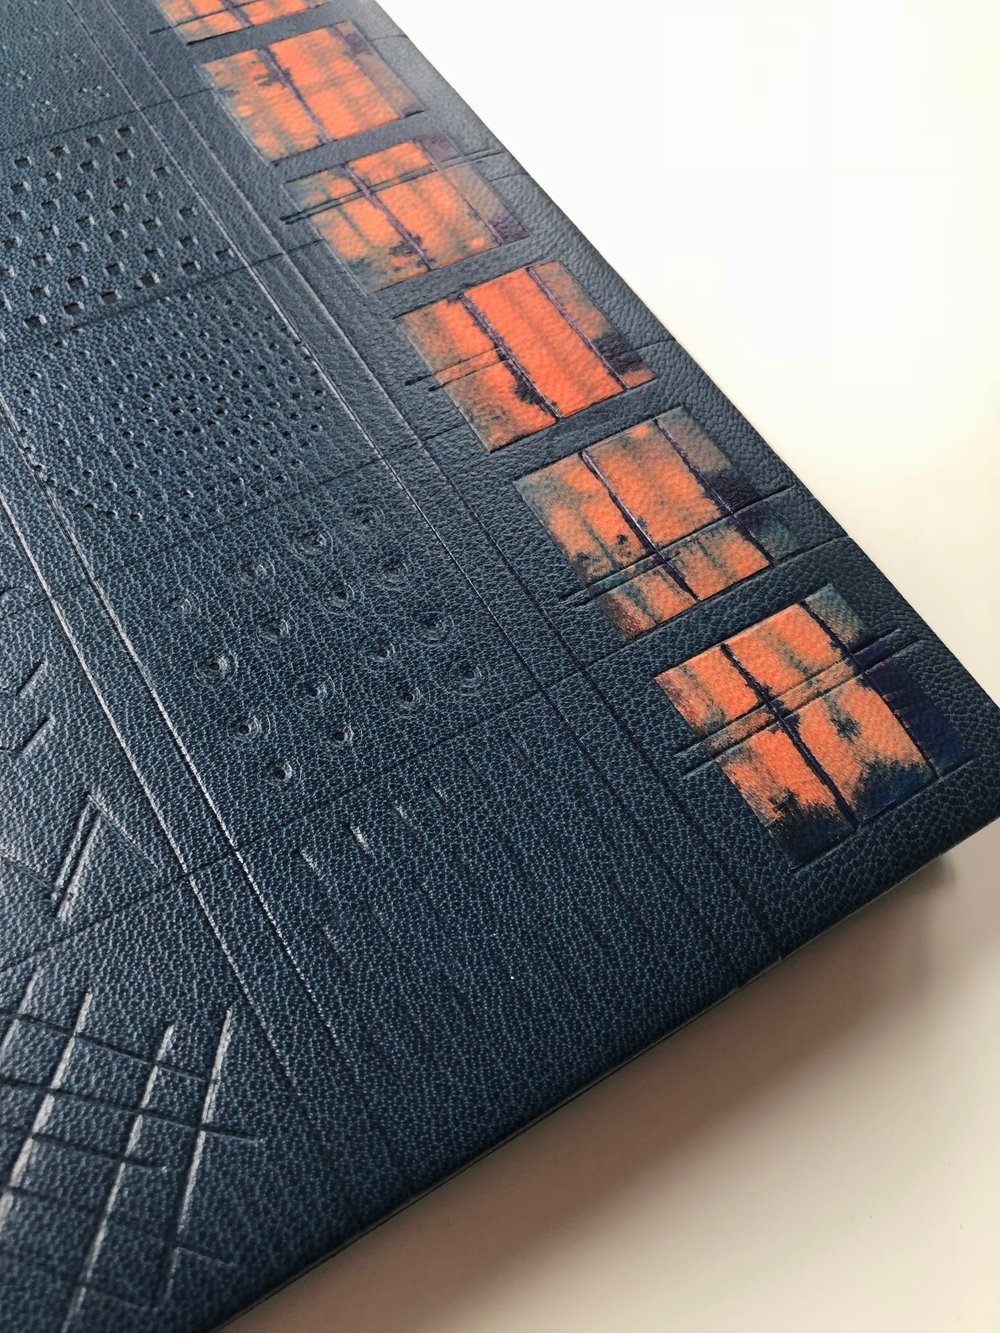 fine binding design process